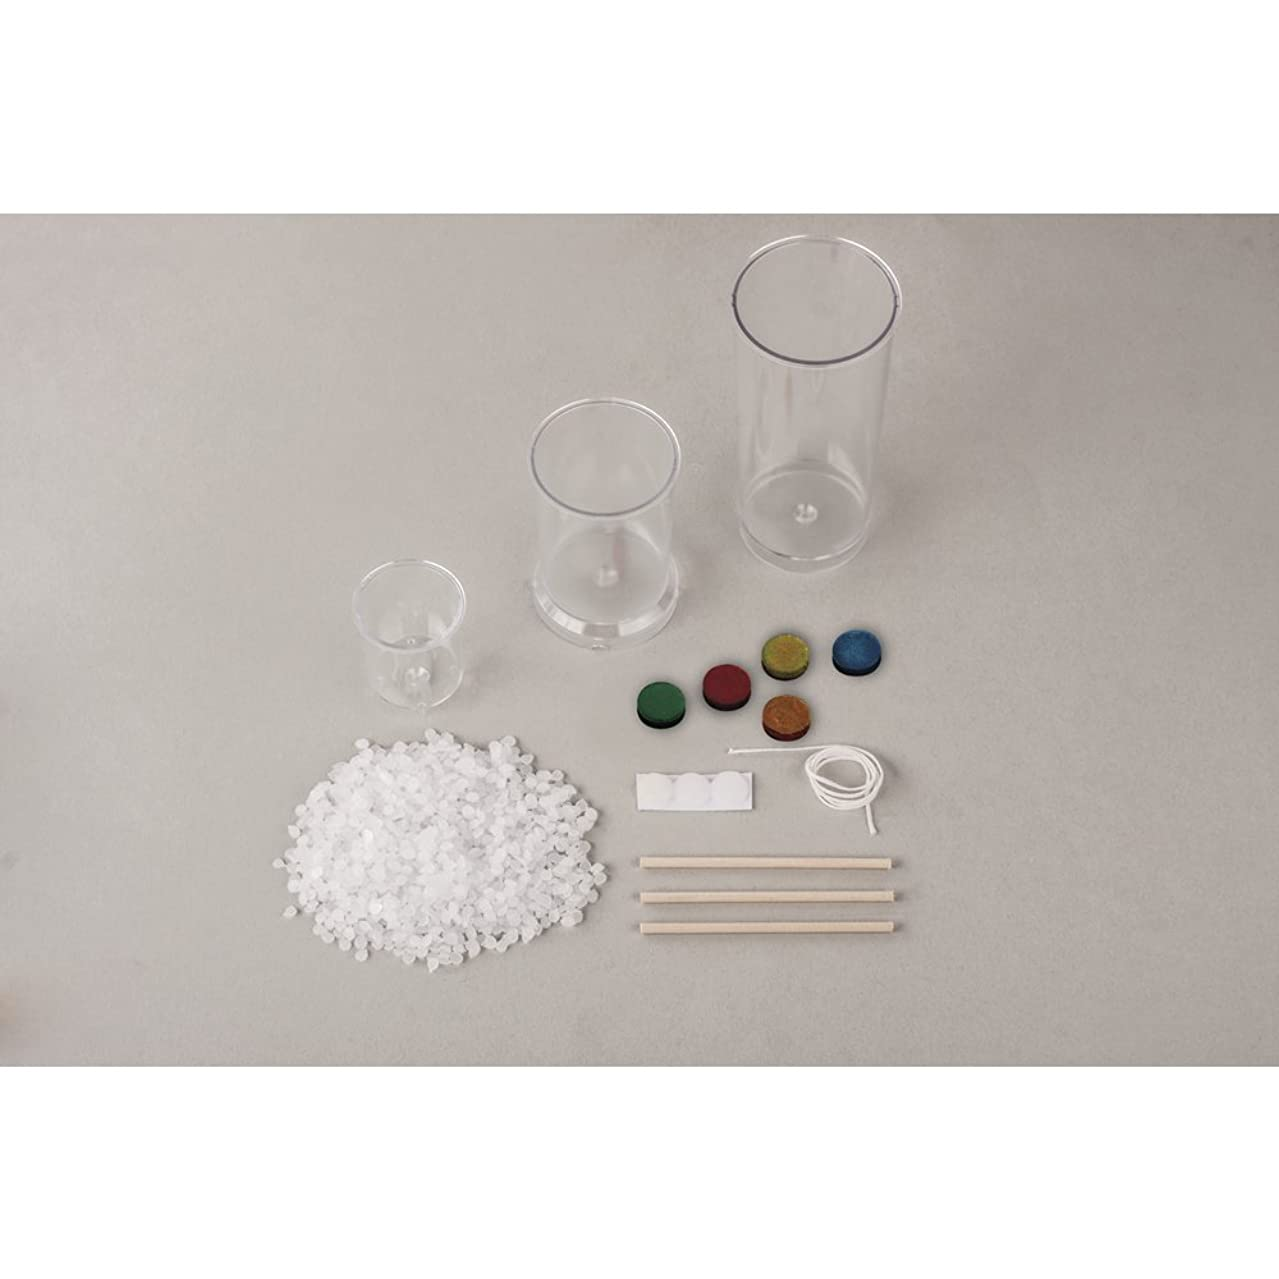 RAYHER HOBBY Cast Round CK Starter Kit, Wax, Multi-Colour, 23 x 23 x 11 cm